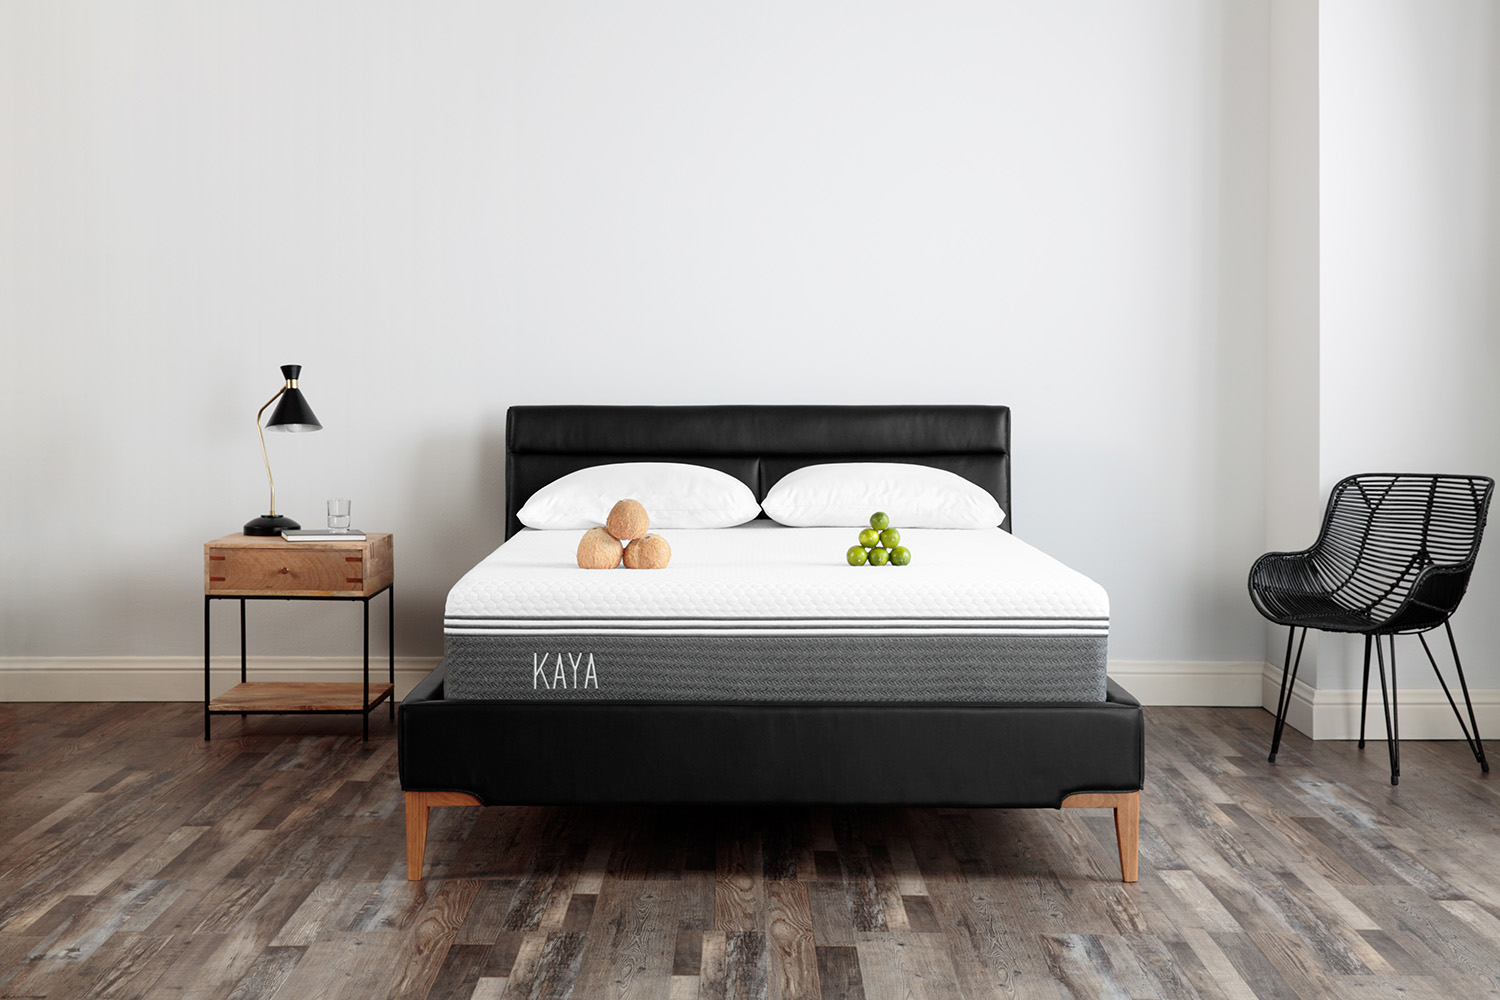 KAYA Mattress Support